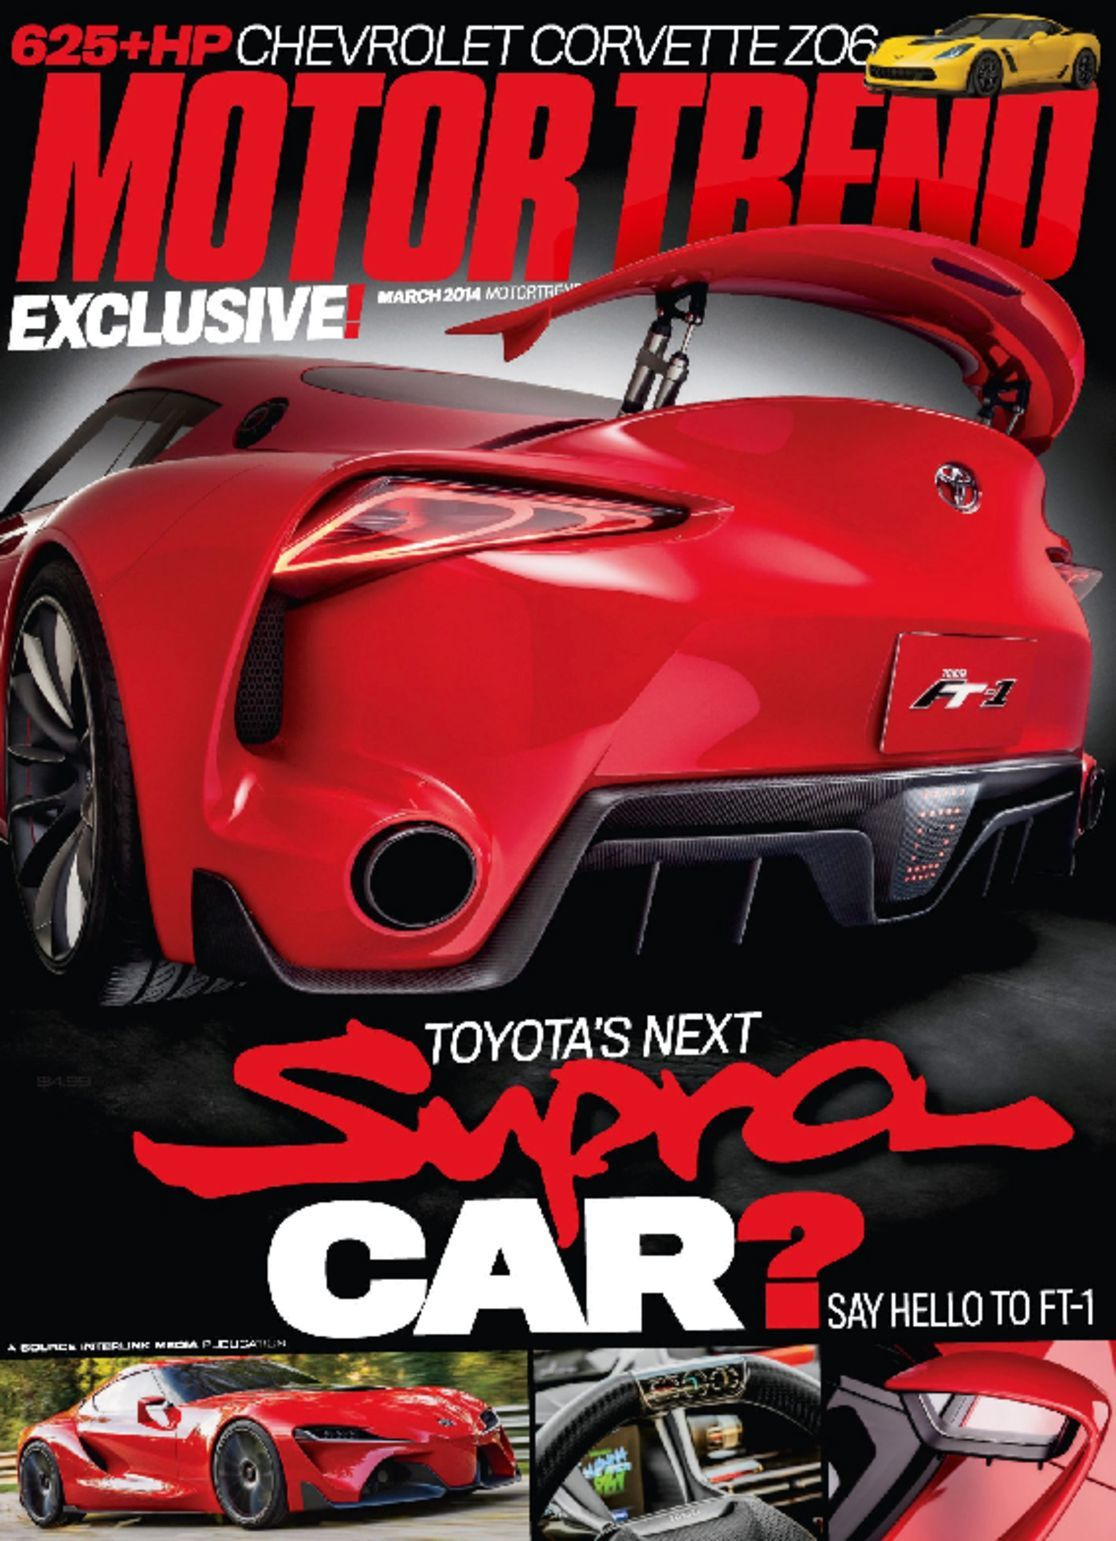 Motor trend subscription